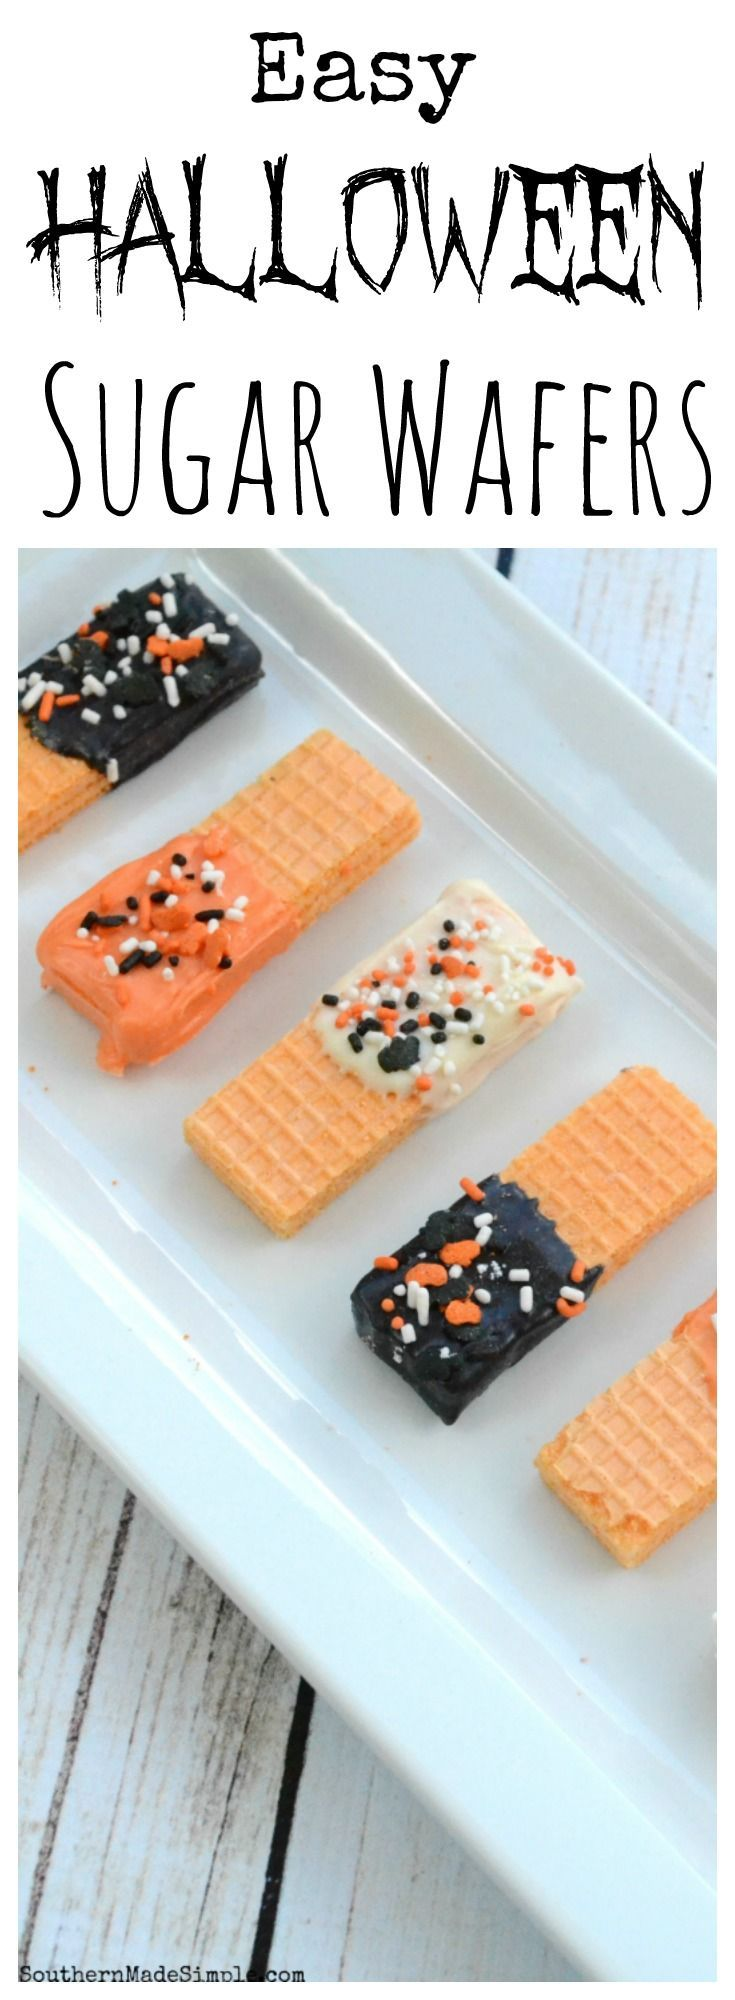 These simple Halloween treats are easy to make and come together in a pinch. They're the perfect snack to make for a Halloween party and are easy for kids to make!